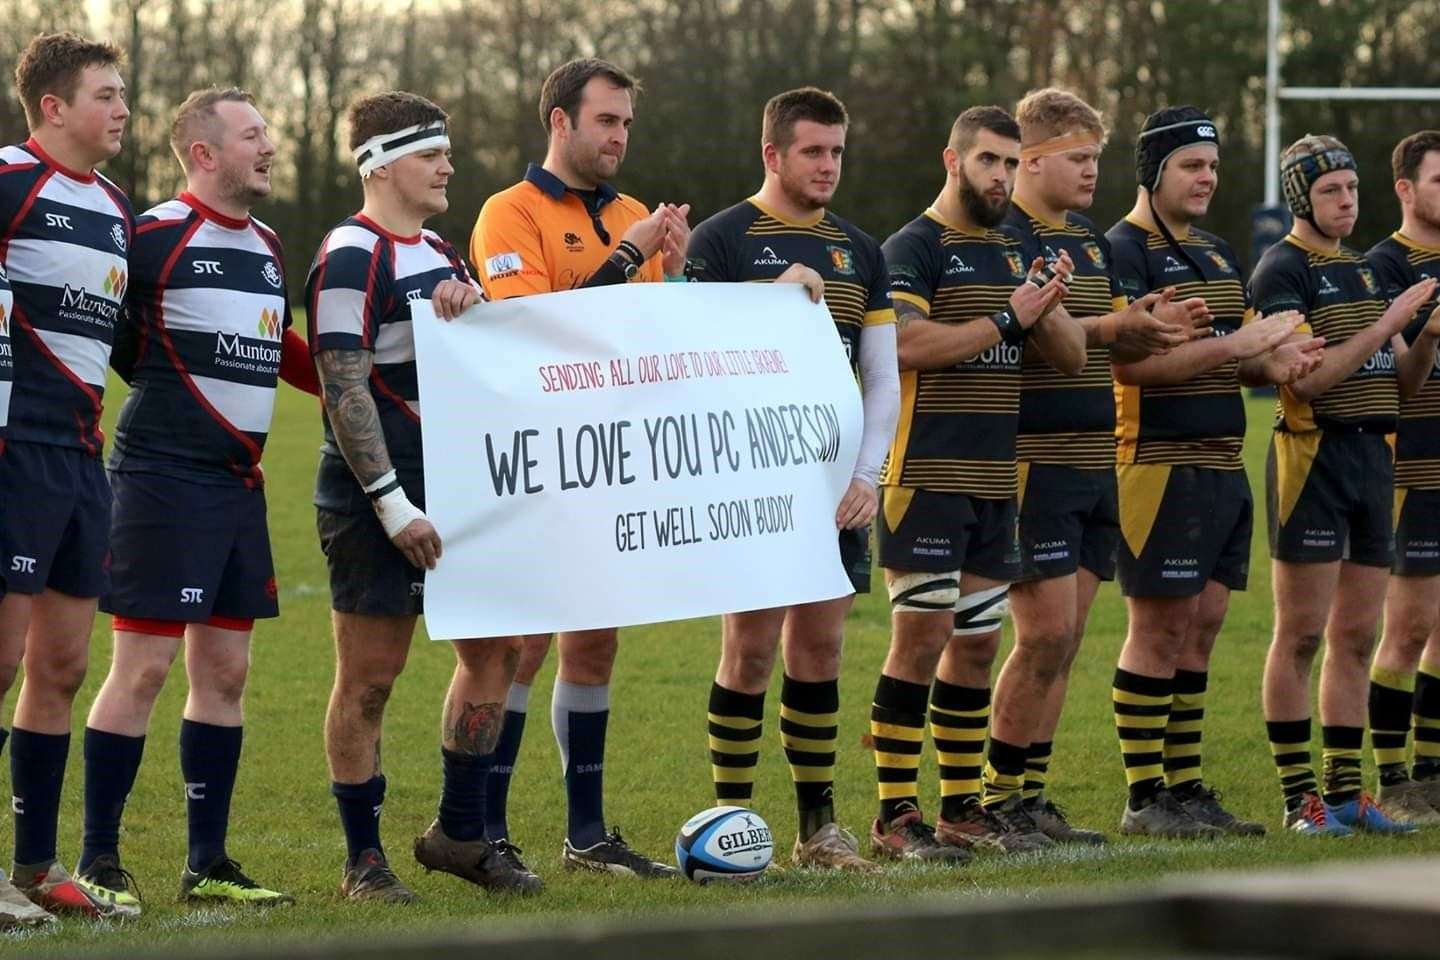 Stowmarket Rugby hold a round of applause for Graeme Anderson